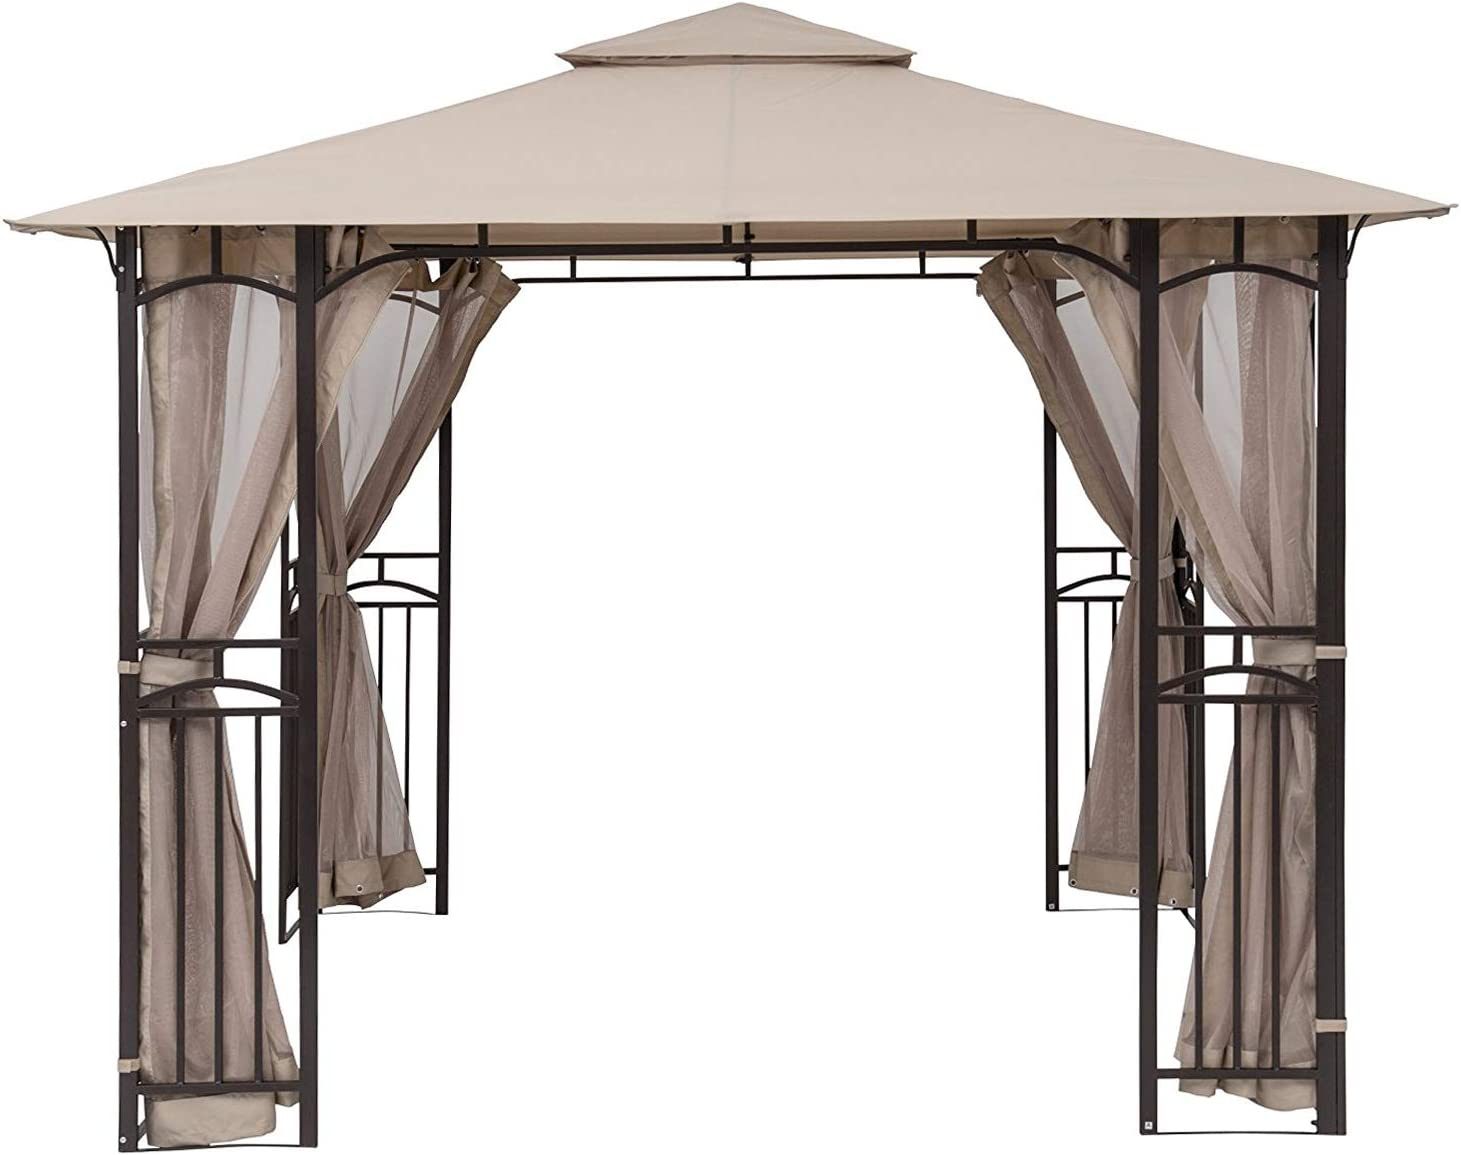 Outsunny 4 Pack Universal Gazebo Replacement Sidewalls Privacy Panel for Most 3 x 3m Gazebo Canopy Pavillion Outdoor Shelter Curtains Accessories Beige